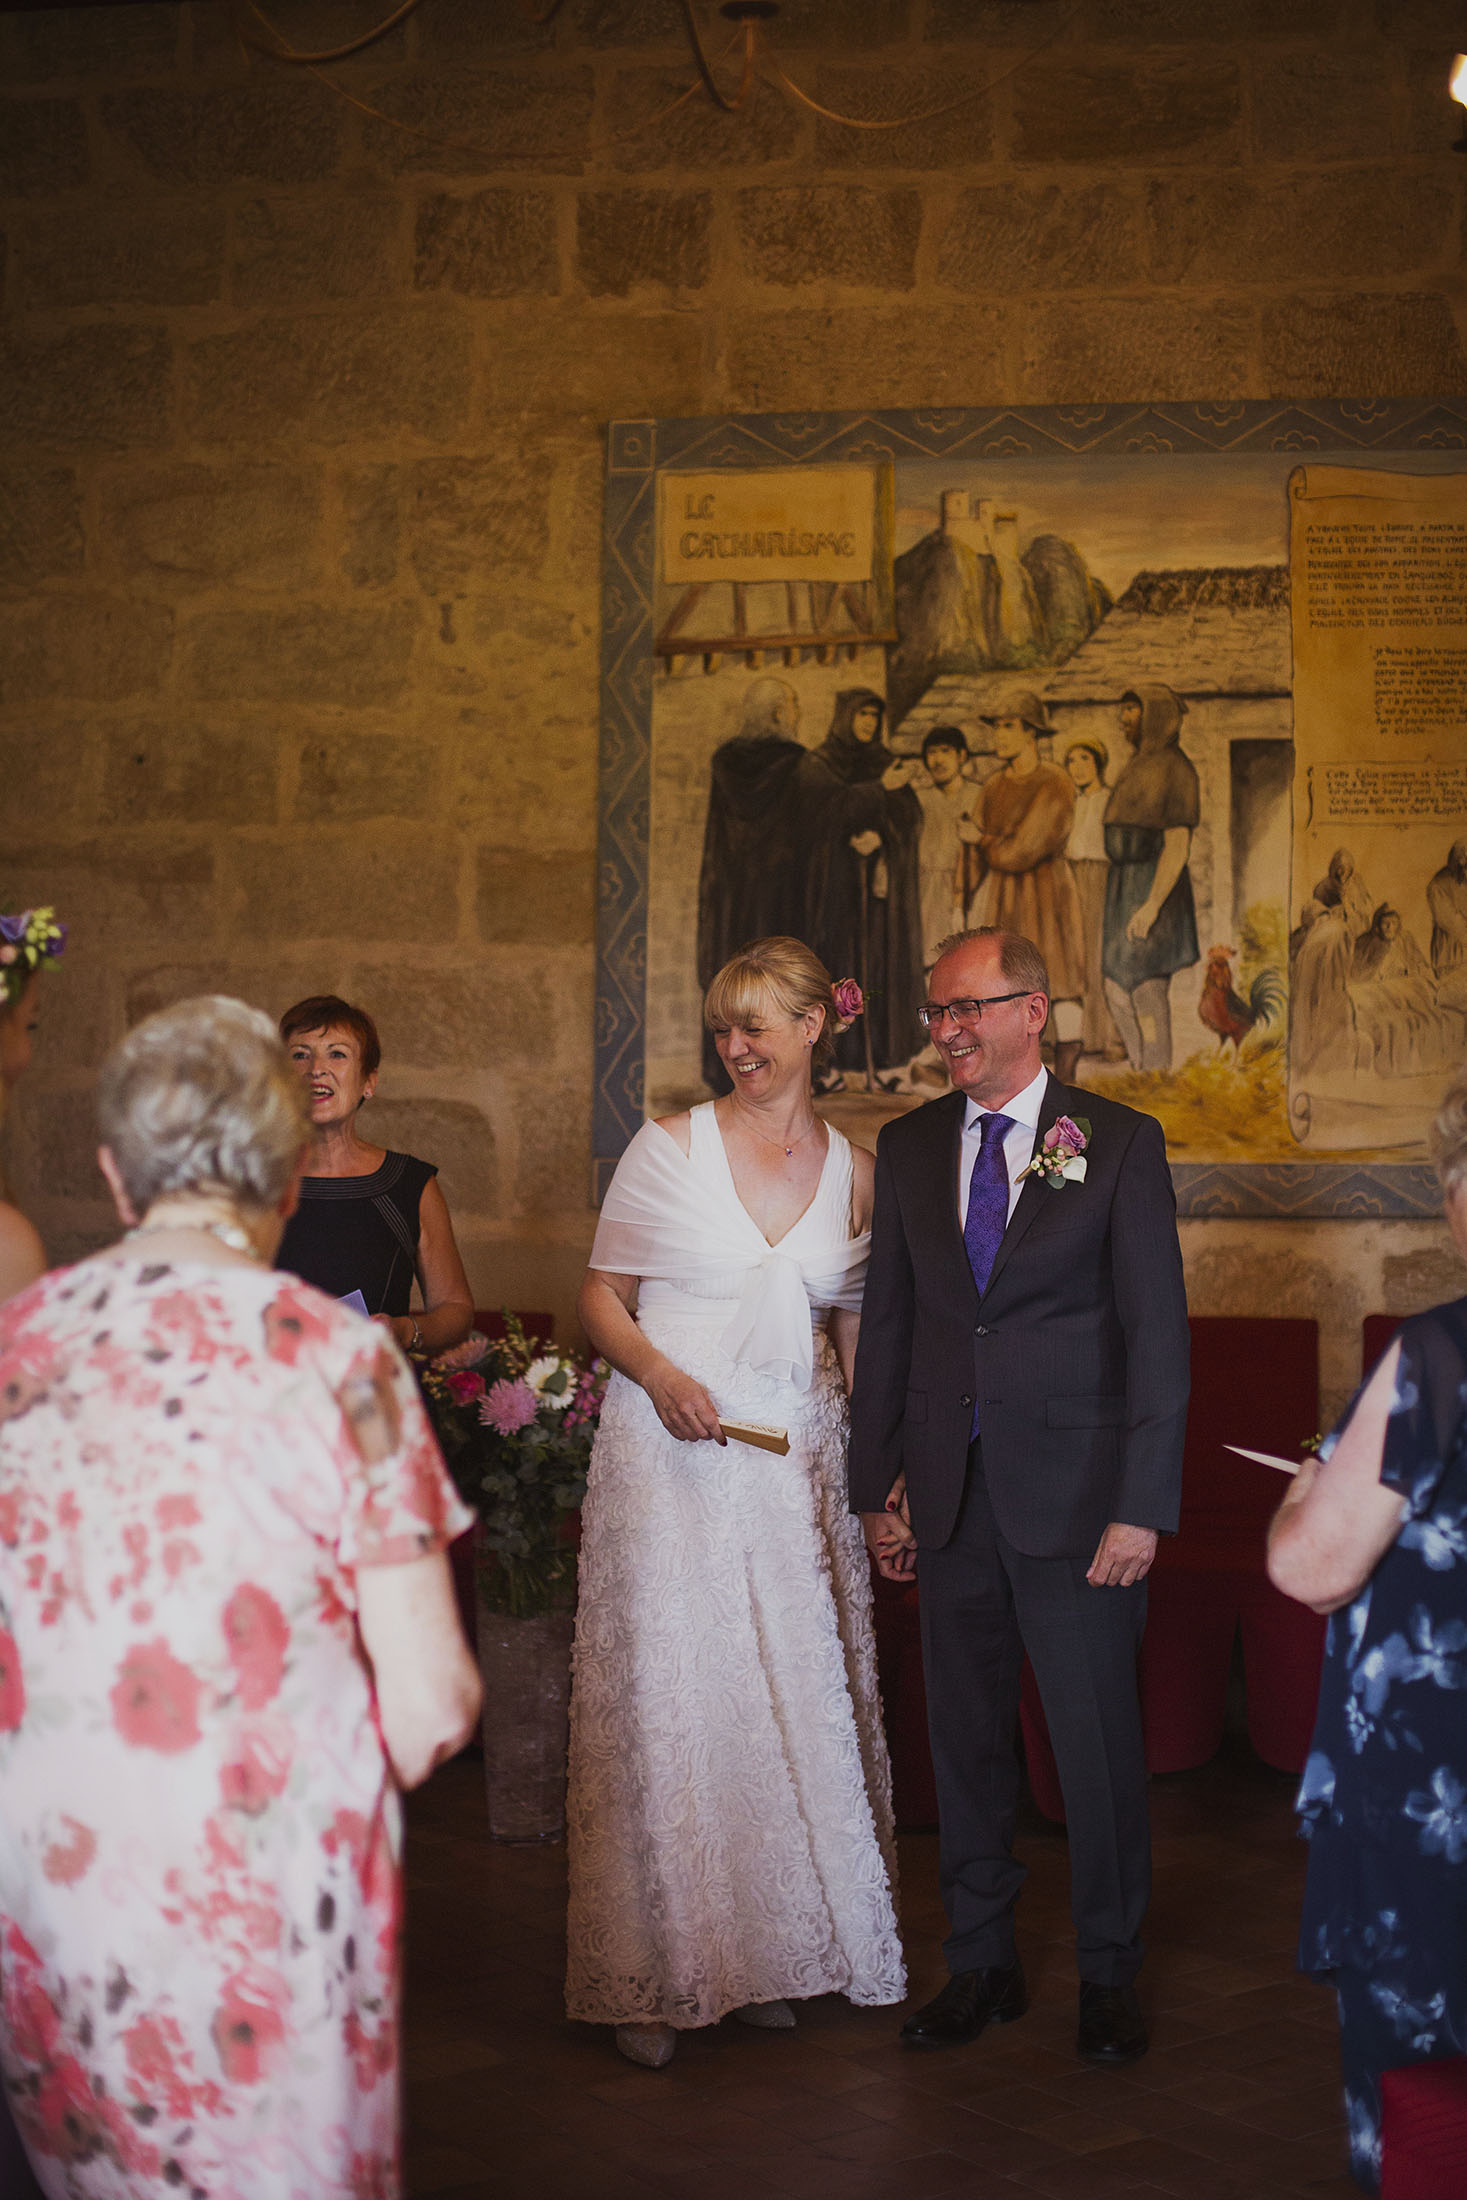 wedding ceremony at chateaux des ducs de joyeuses france destination wedding photography